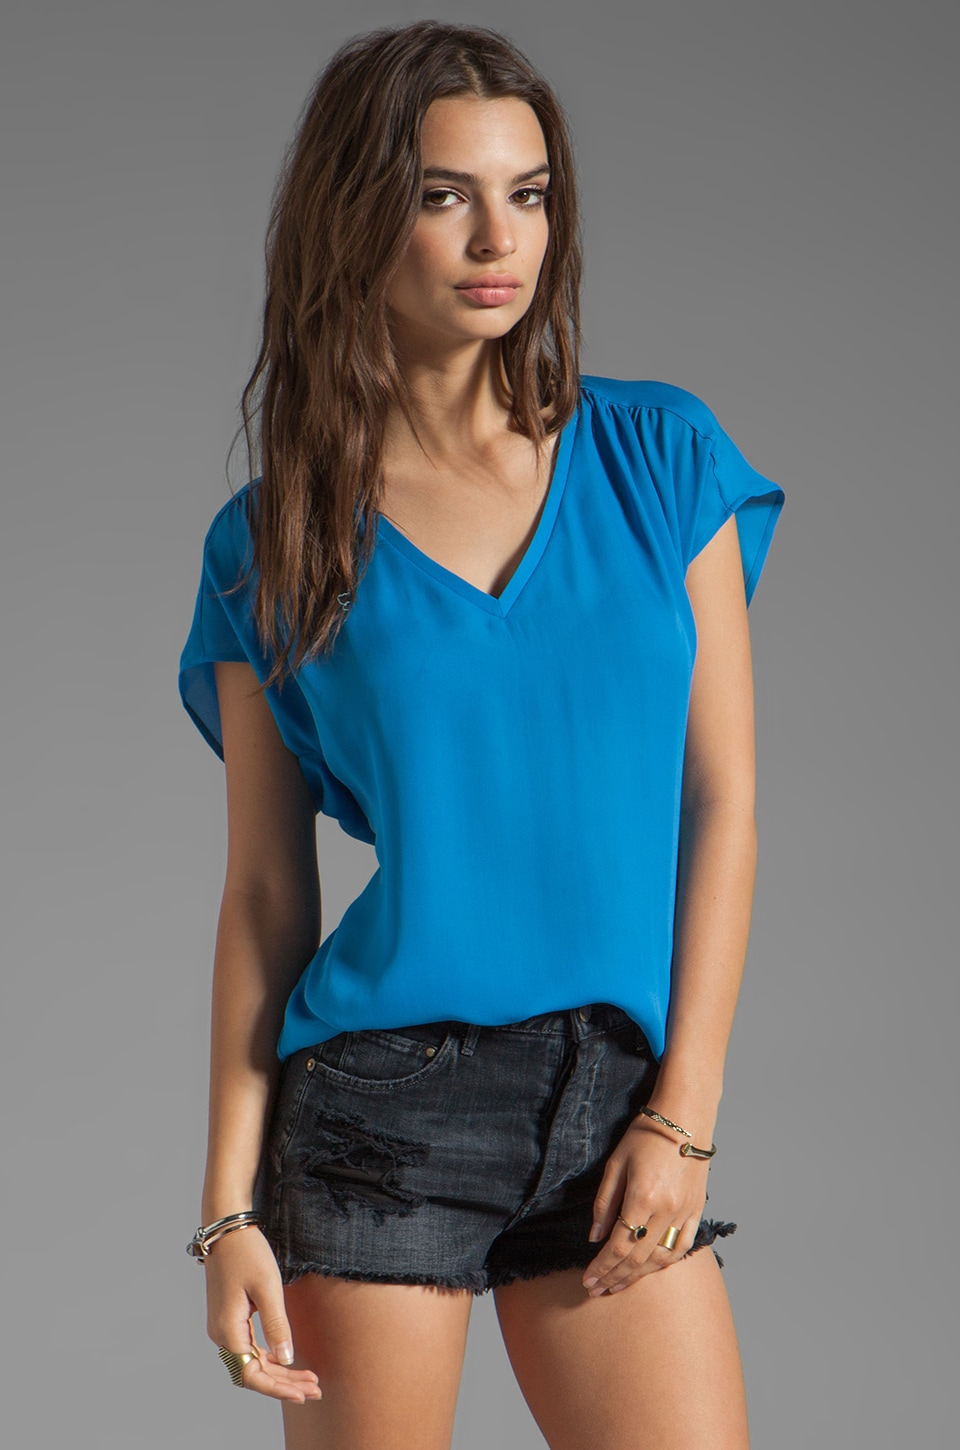 Joie Suela Blouse in Daphne Blue